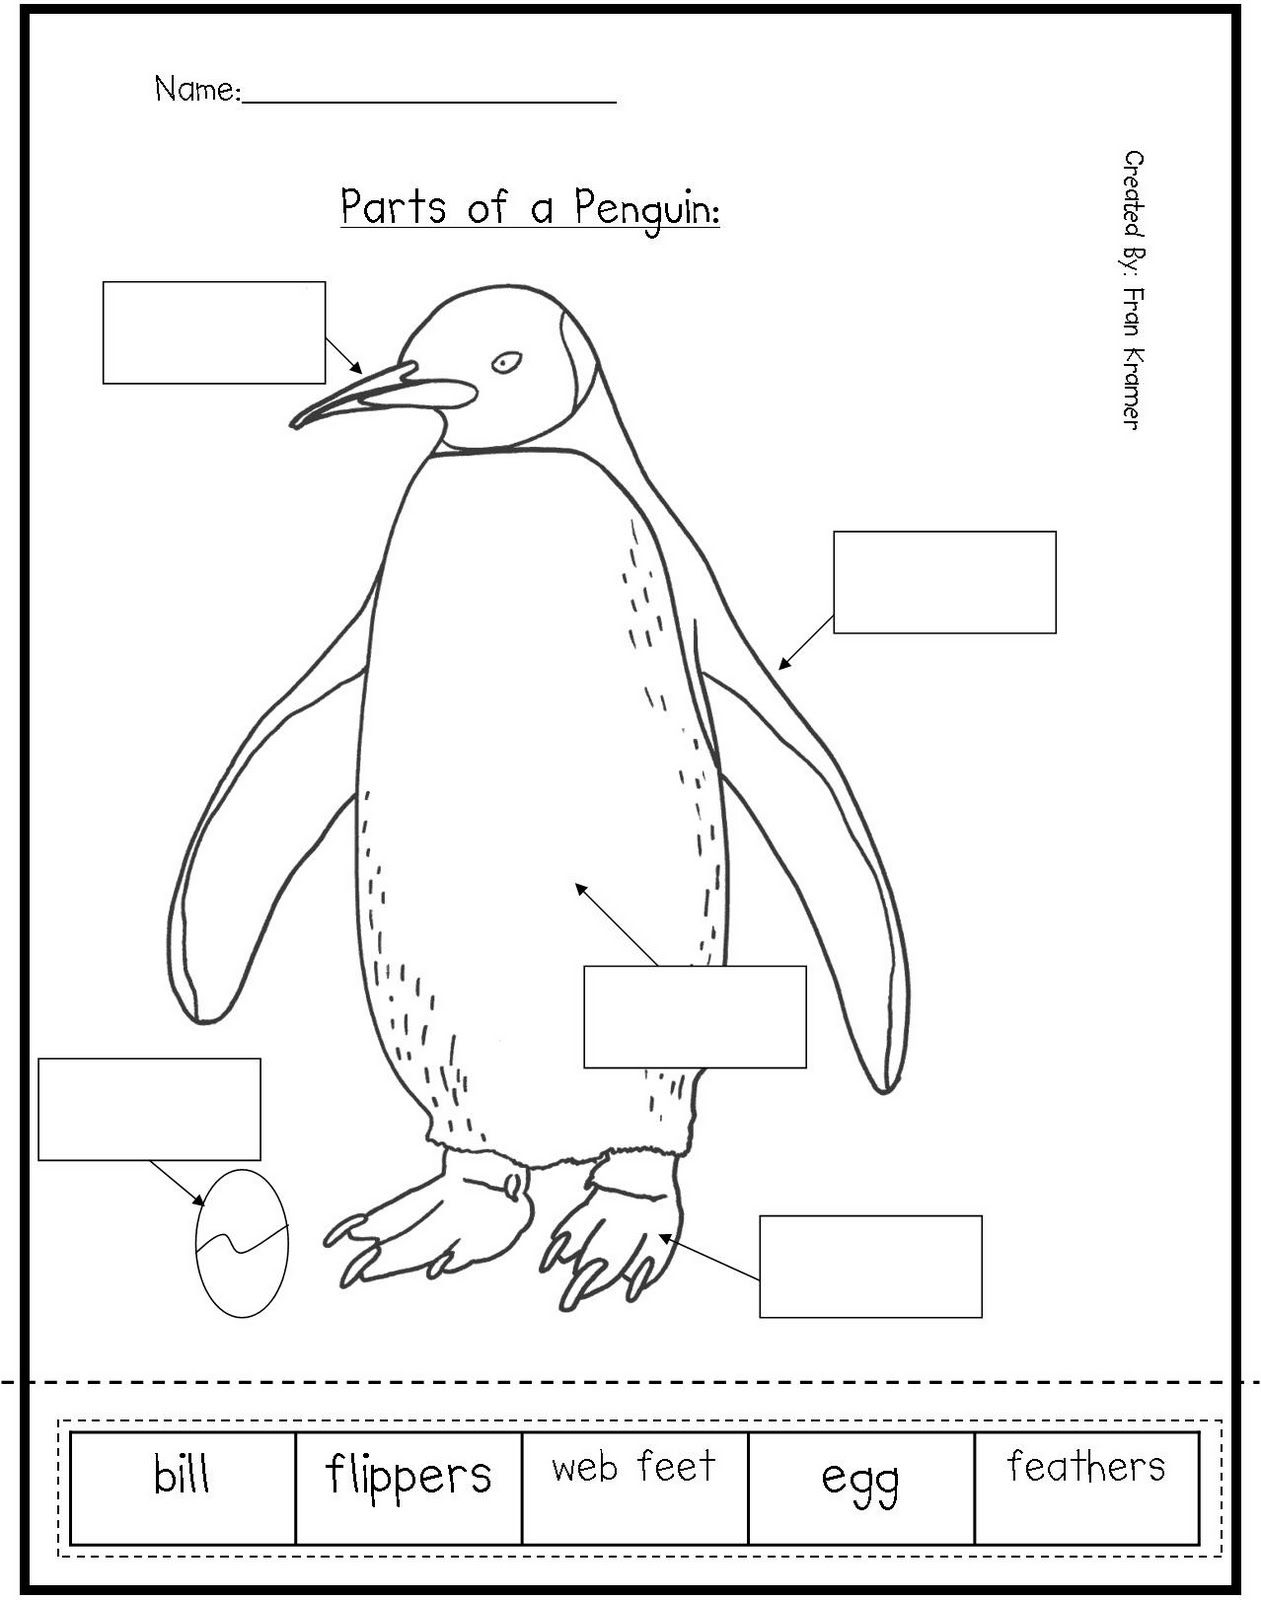 Printables Penguin Worksheets 1000 images about fdk penguins on pinterest graphic organizers life cycles and common core activities